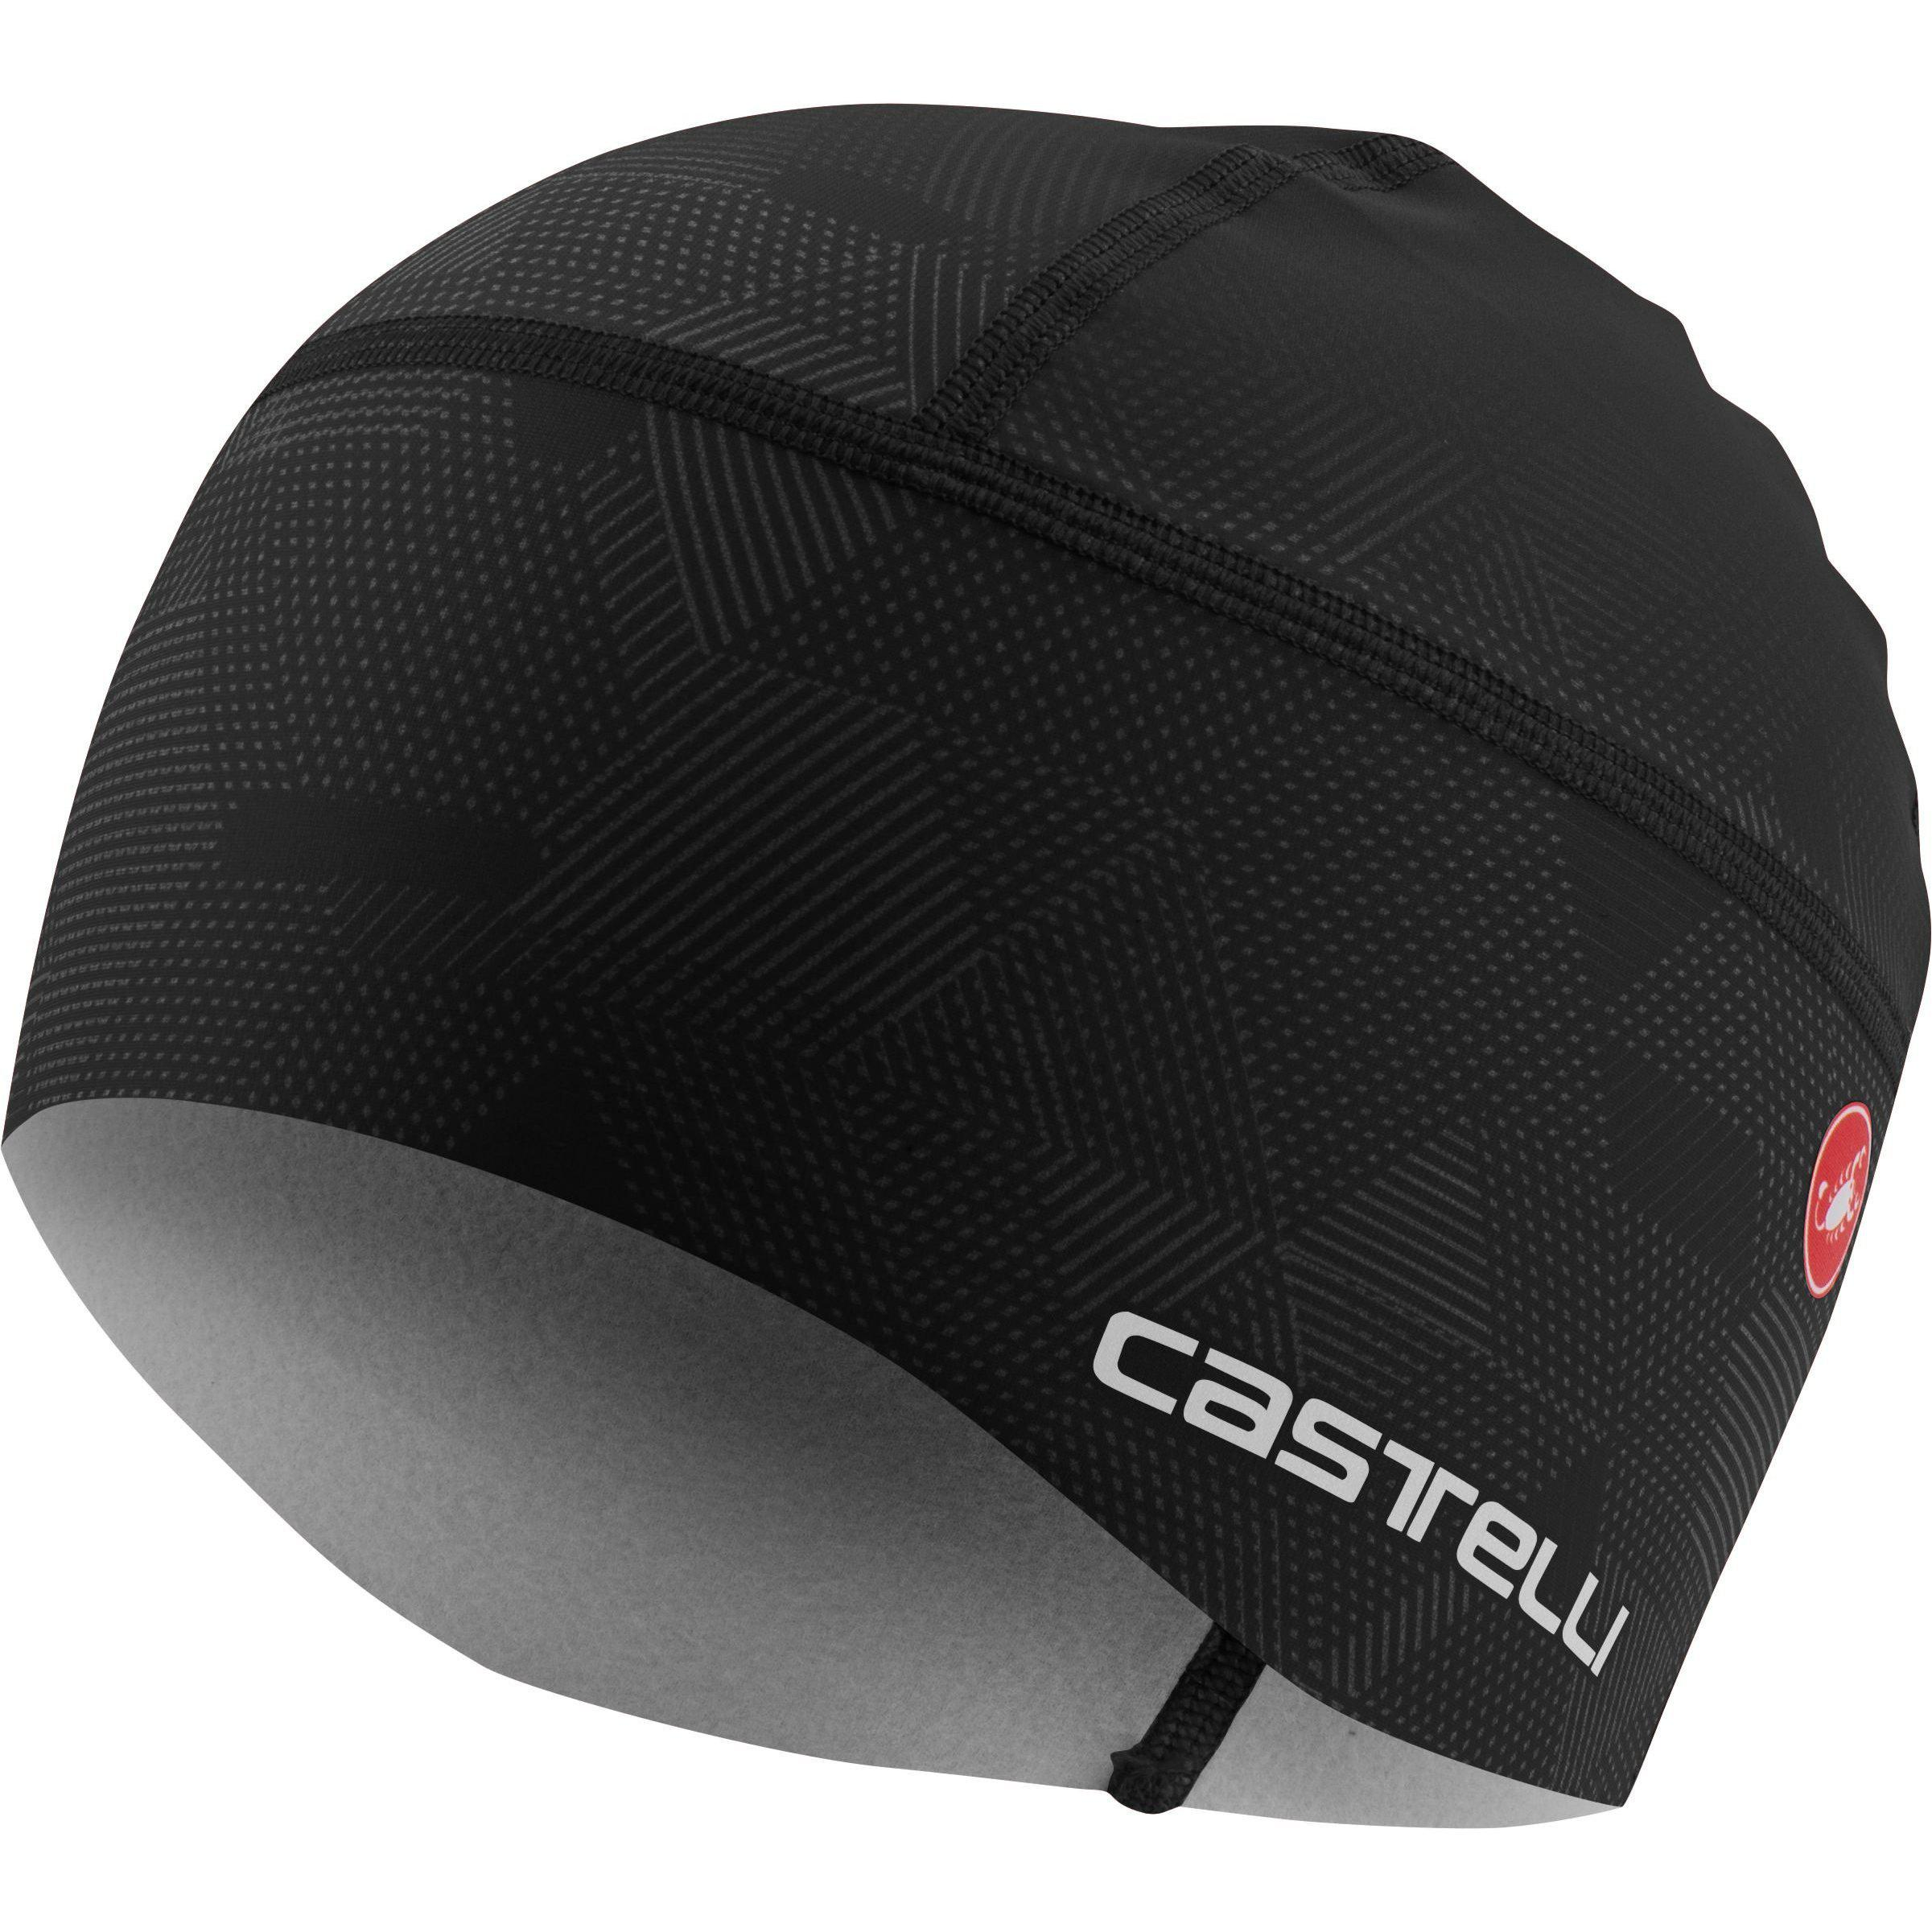 Castelli-Castelli Pro Thermal Women's Skully-Light Black-UNI-CS205710858-saddleback-elite-performance-cycling